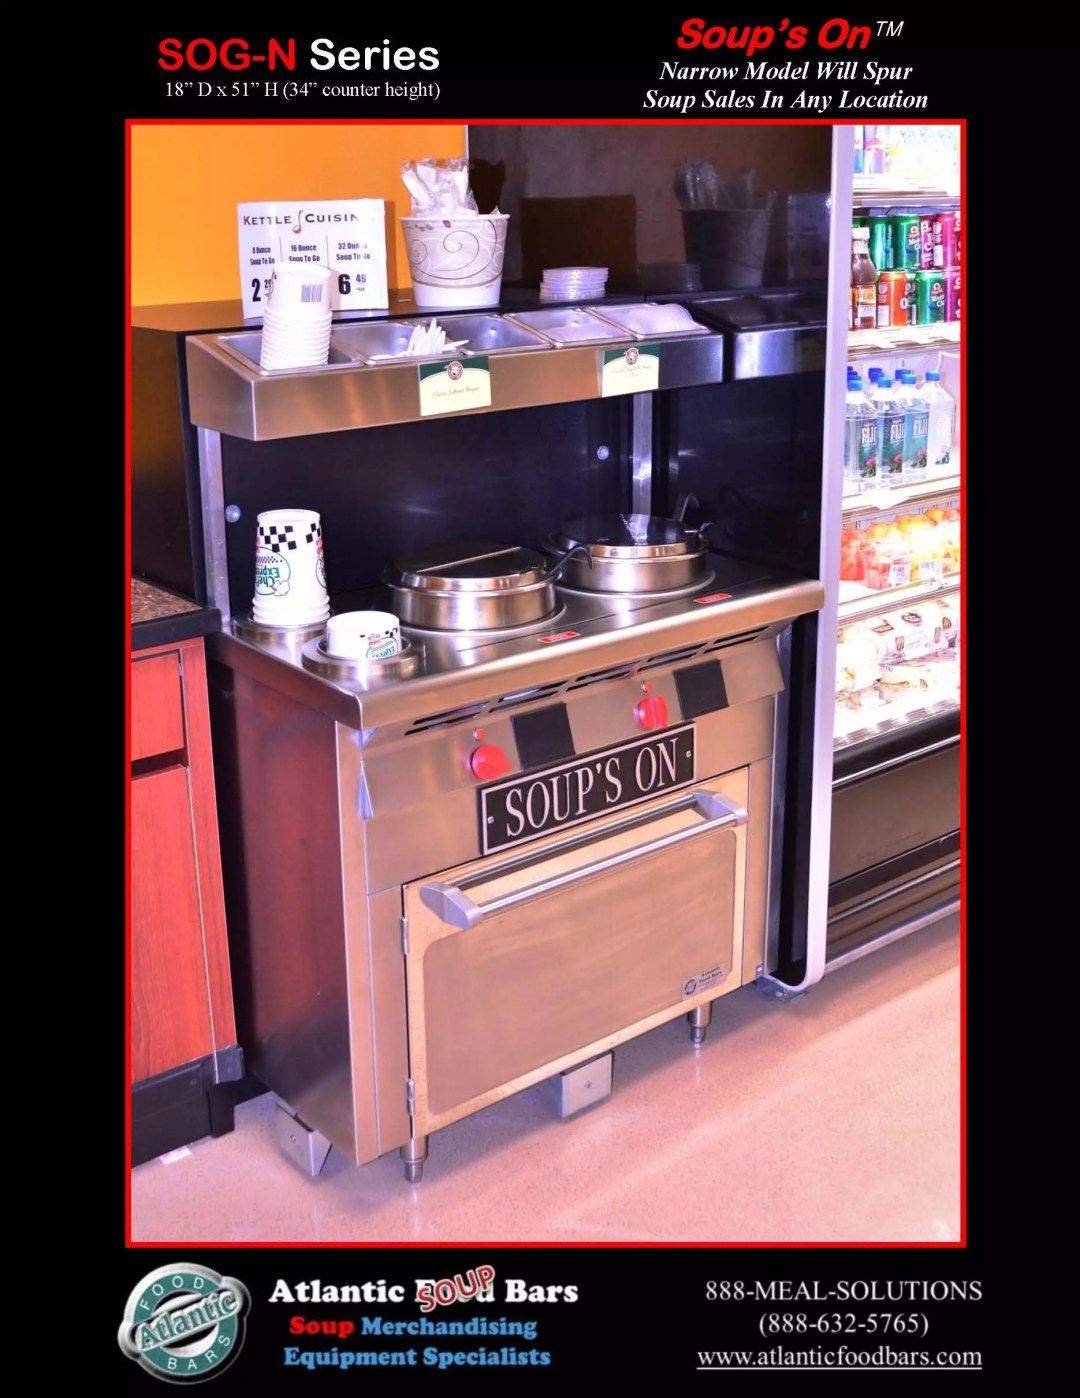 Atlantic Food Bars - 3' narrow two well Soup's On chowder station with overshelf - SOG3618N